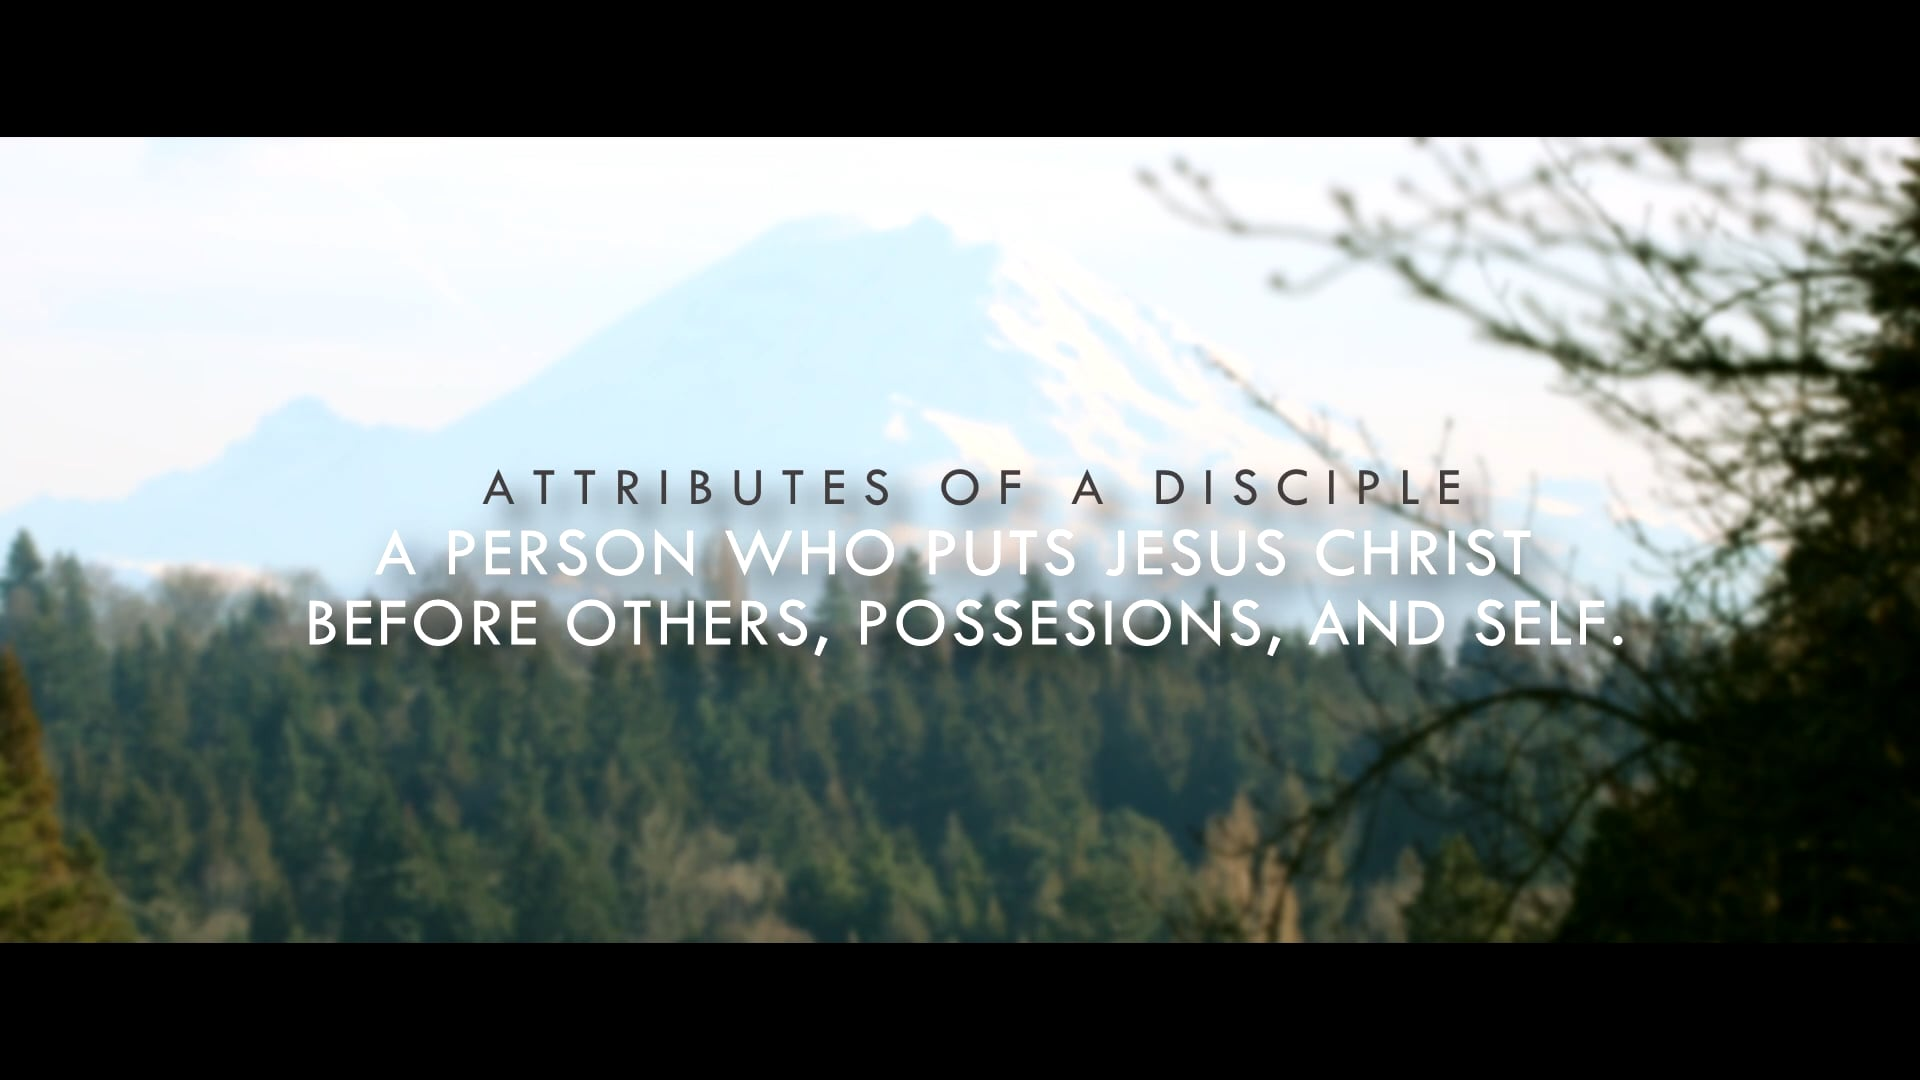 Attributes of a Disciple Part 1 - A person who puts Jesus Christ before others, possessions, and self.